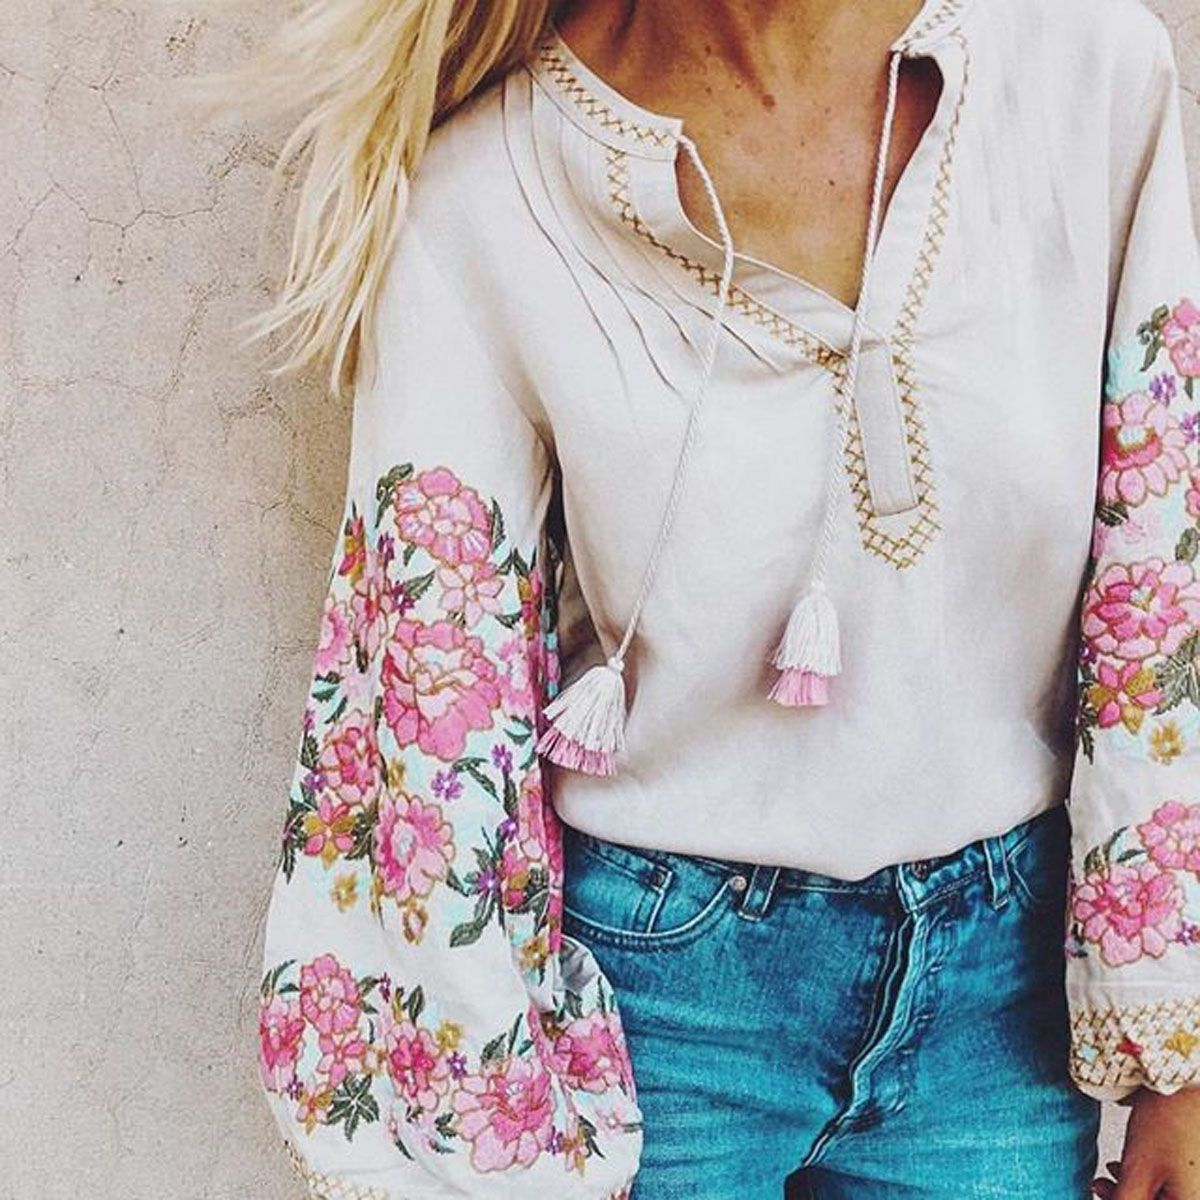 9e75be096f4426 Boho Floral Embroidered Blouse 3 4 sleeve V-neck tassel Hippie Chic Women  Shirt Top Casual Beach Blusa Blouses Summer 2018  shirts  blouses   shirtshop ...